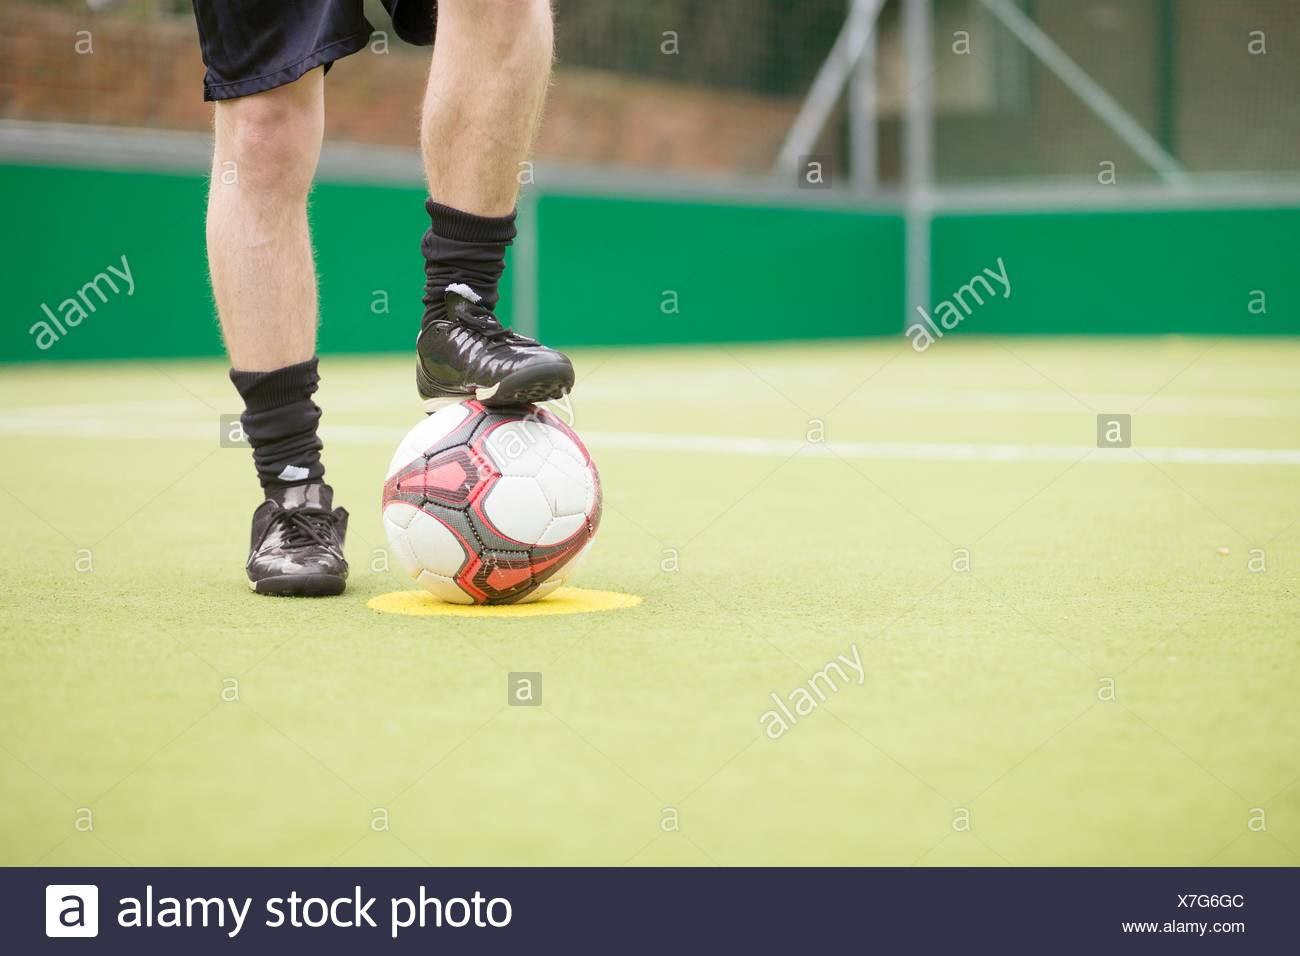 Young man on urban football pitch, foot on football, low section - Stock Image